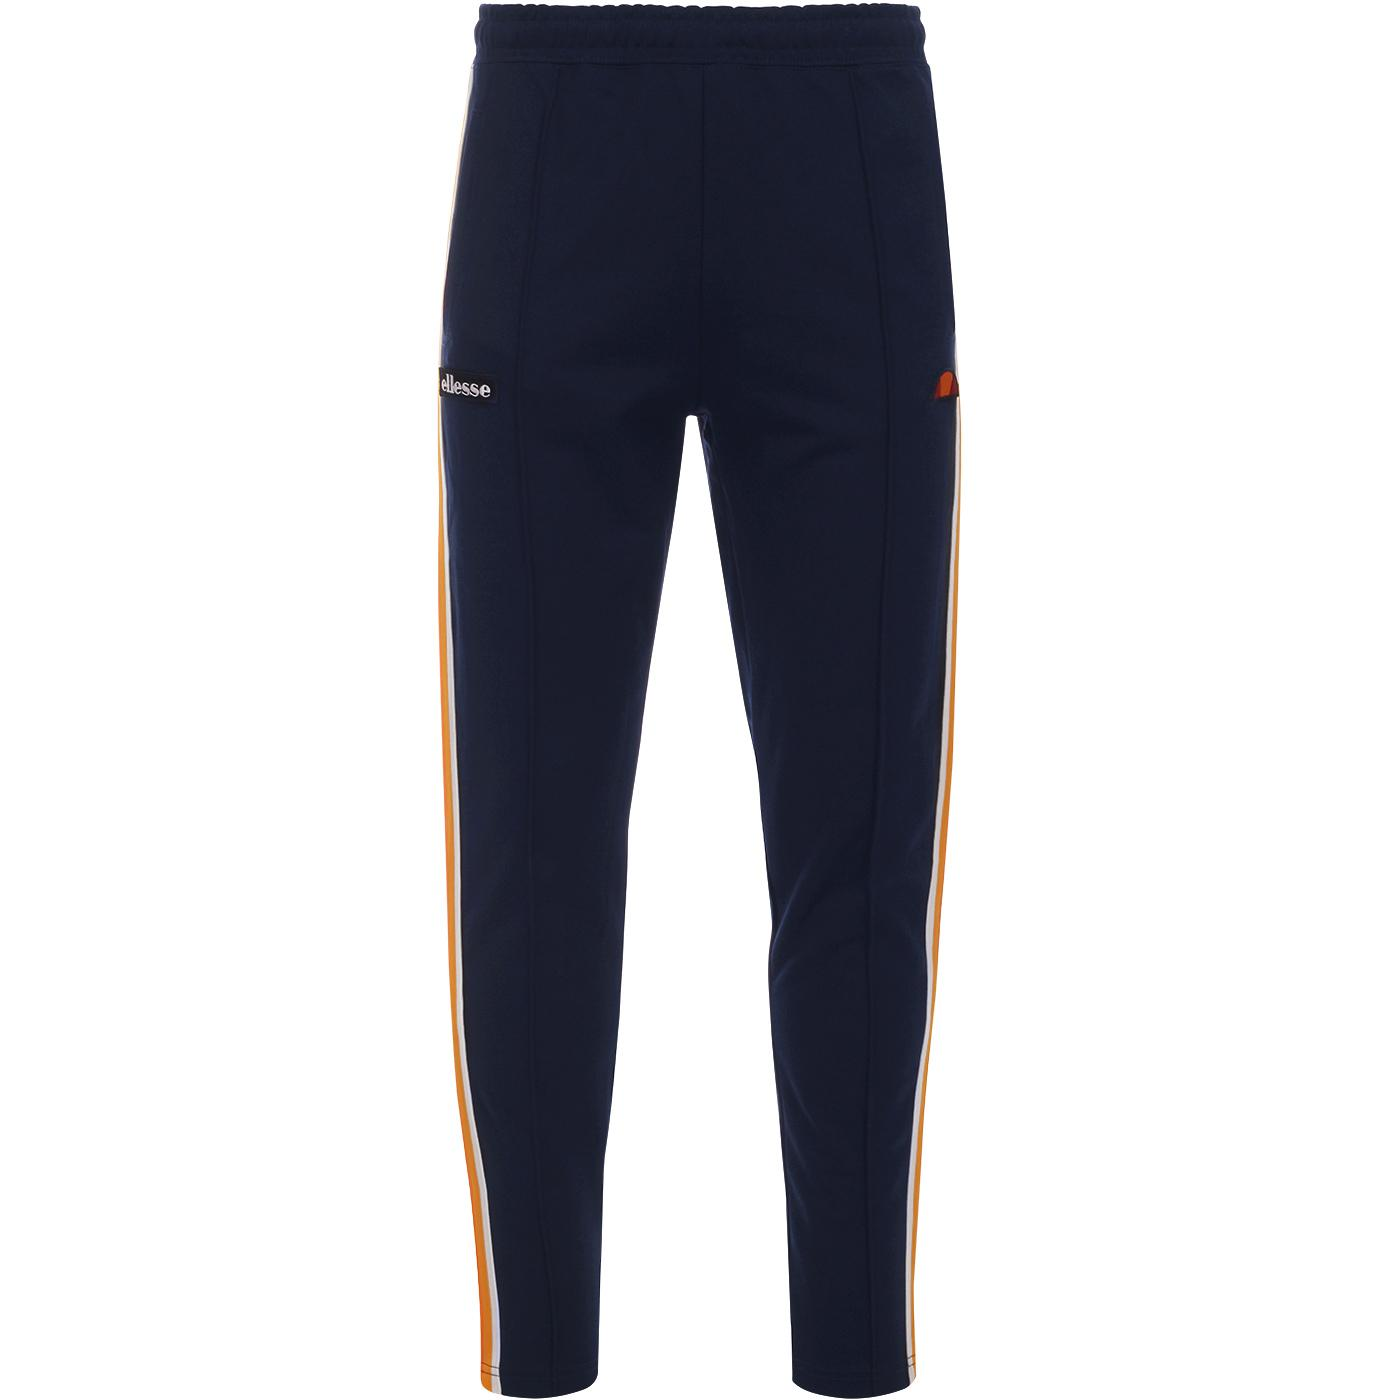 Civetta ELLESSE Retro Sports 80s Track Pants NAVY